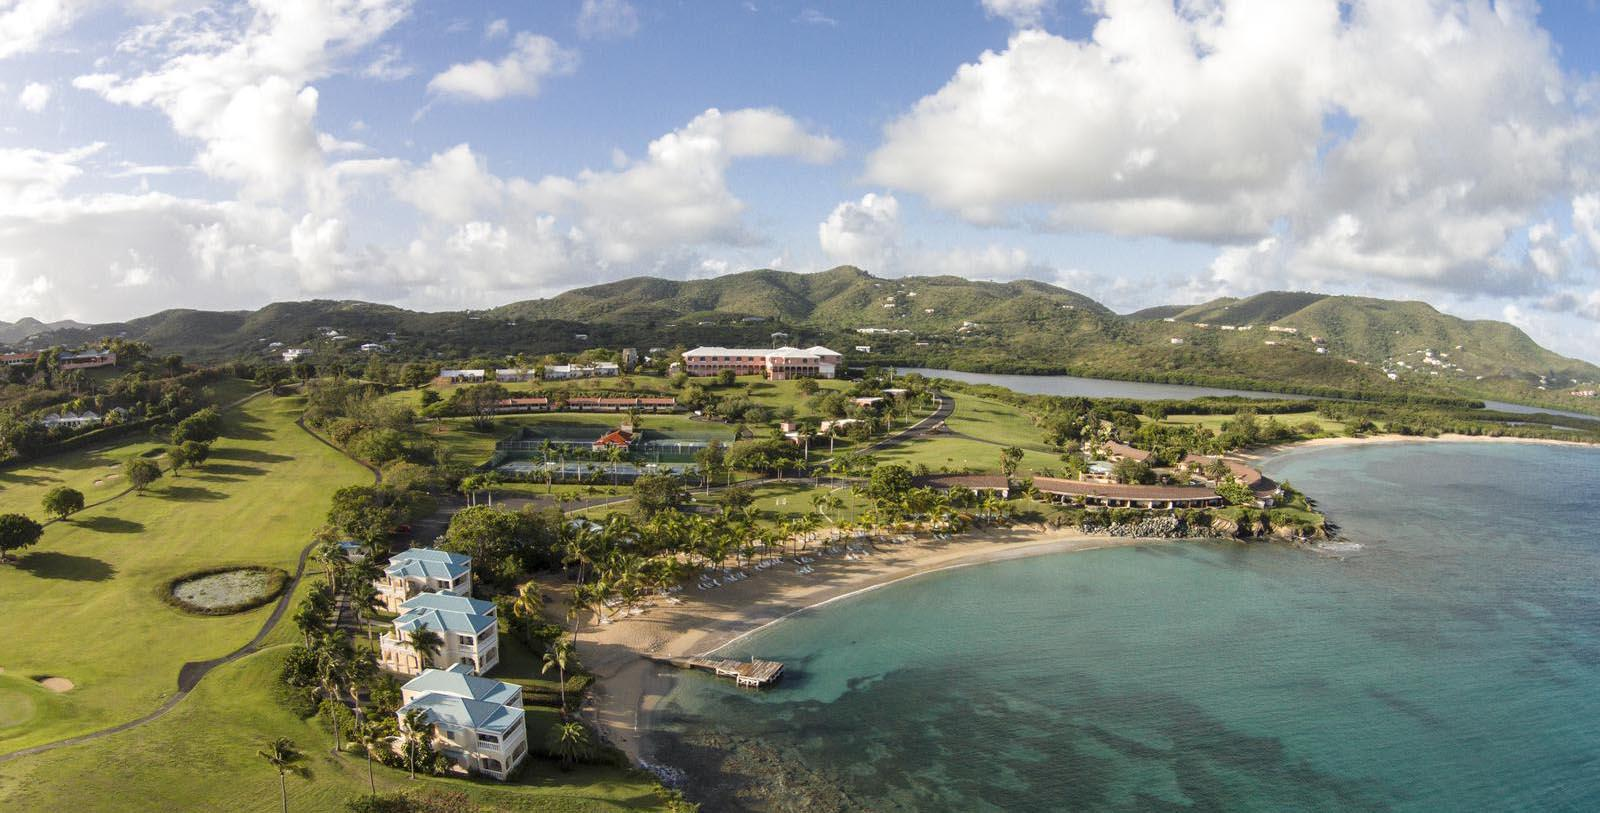 Image of Aerial Exterior View The Buccaneer, 1653, Member of Historic Hotels of America, in Christiansted, U.S. Virgin Islands, Special Offers, Discounted Rates, Families, Romantic Escape, Honeymoons, Anniversaries, Reunions